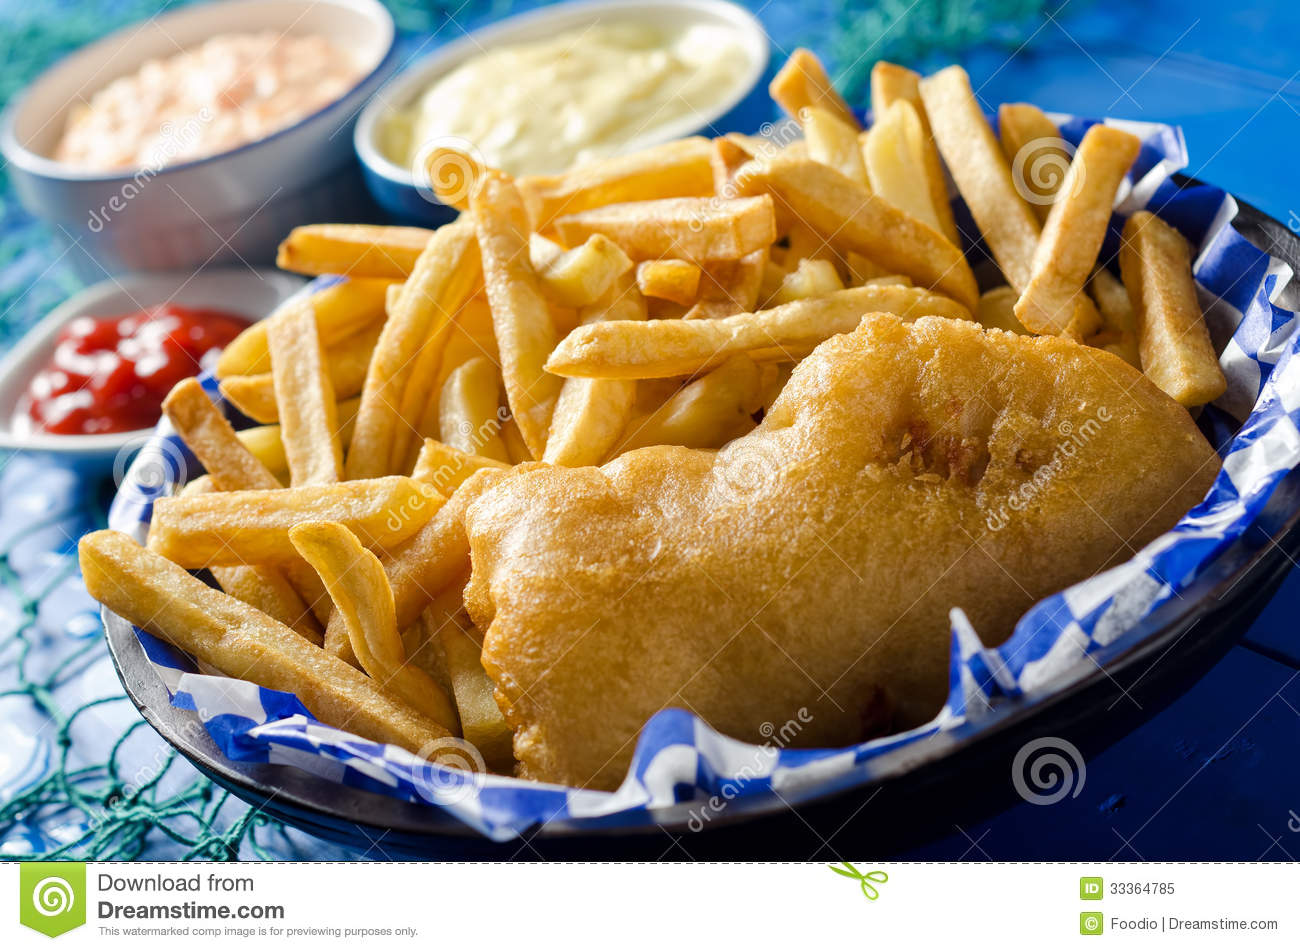 One Piece Fish And Chips Royalty Free Stock Photo - Image: 33364785